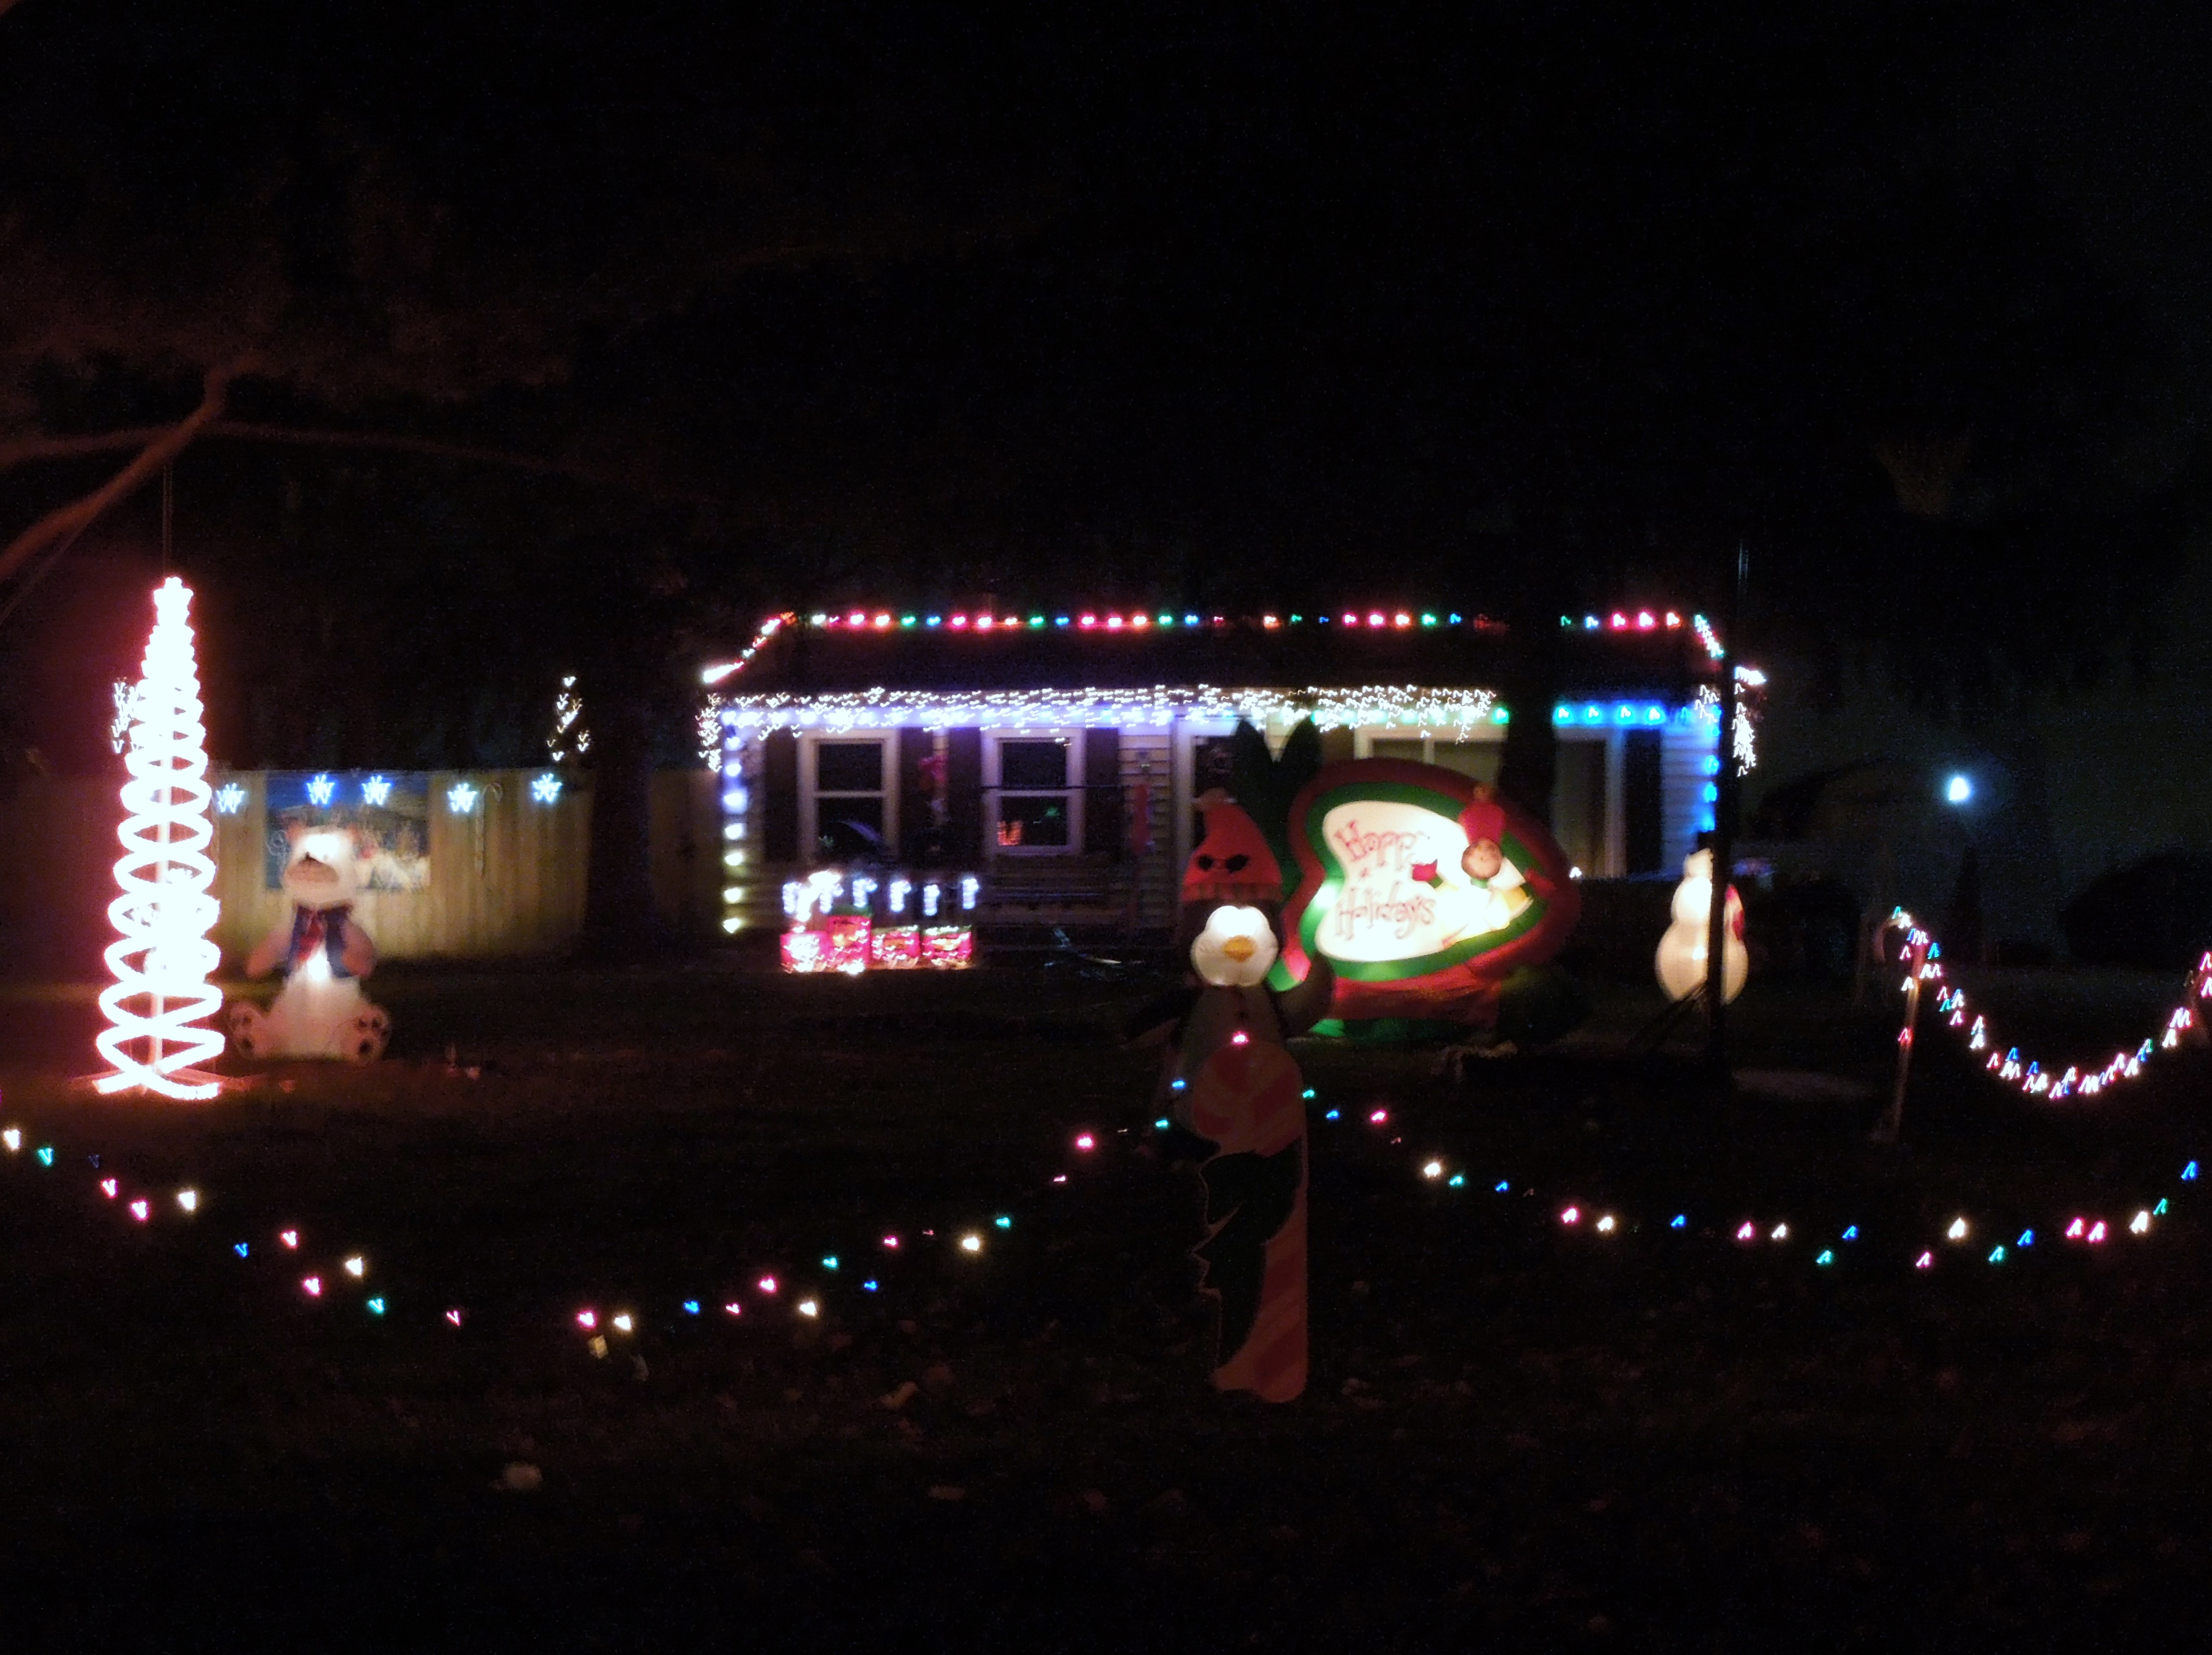 Why do we decorate with christmas lights - How Do You Decorate For Christmas In Your Part Of The World If At All